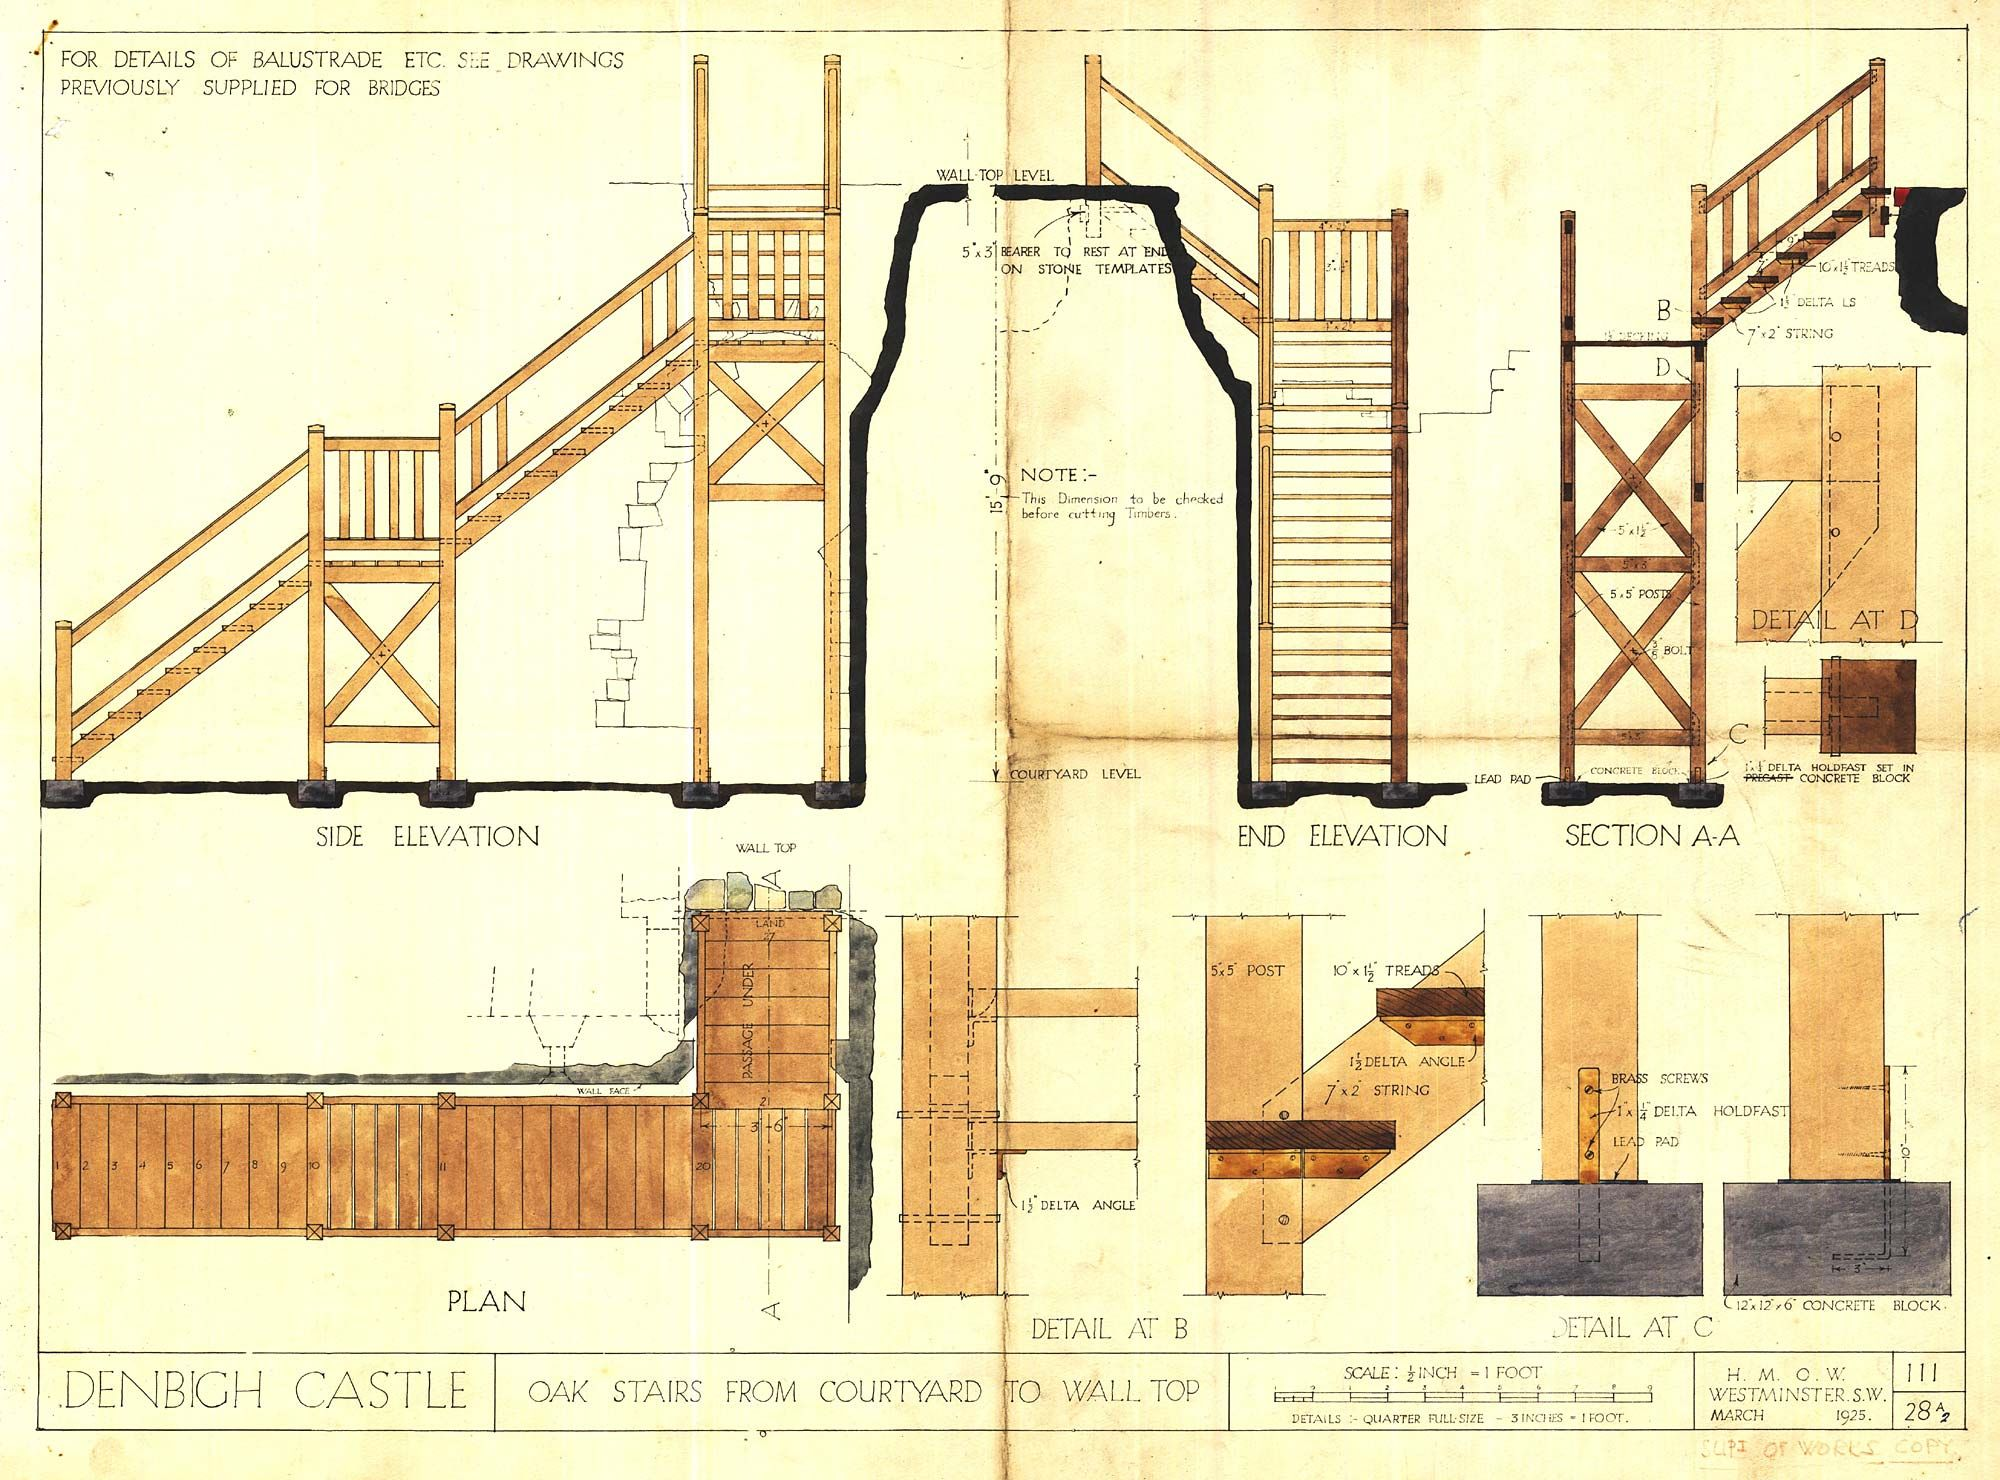 plans elevation and section drawings of stairs to wall